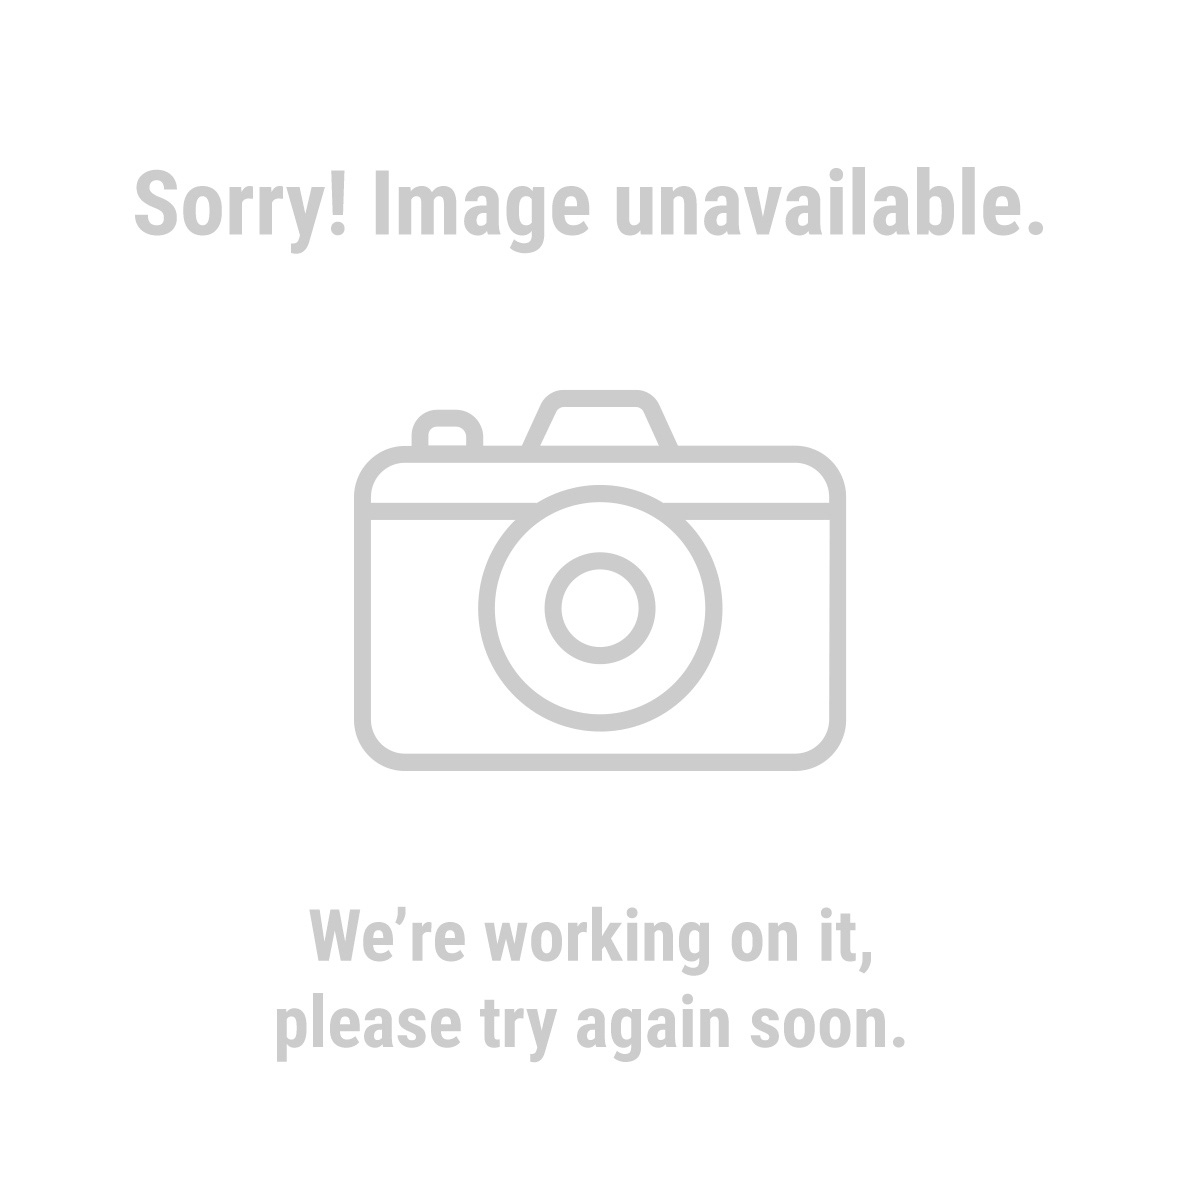 Central-Machinery 61373 5 ton Log Splitter